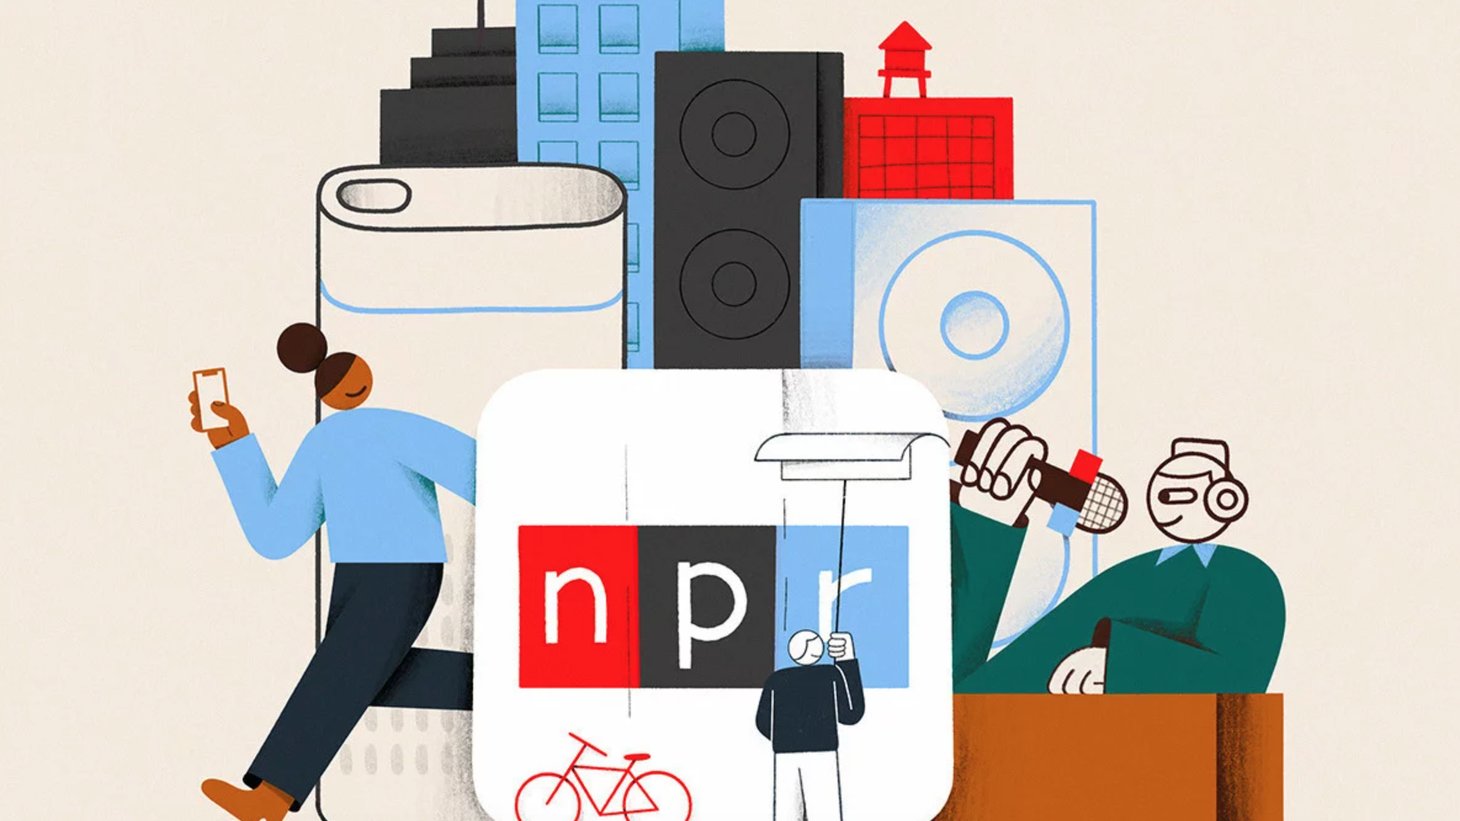 On May 3, 2021, NPR turns 50 years old. To mark this milestone, we're reflecting on and renewing our commitment to Hear Every Voice.